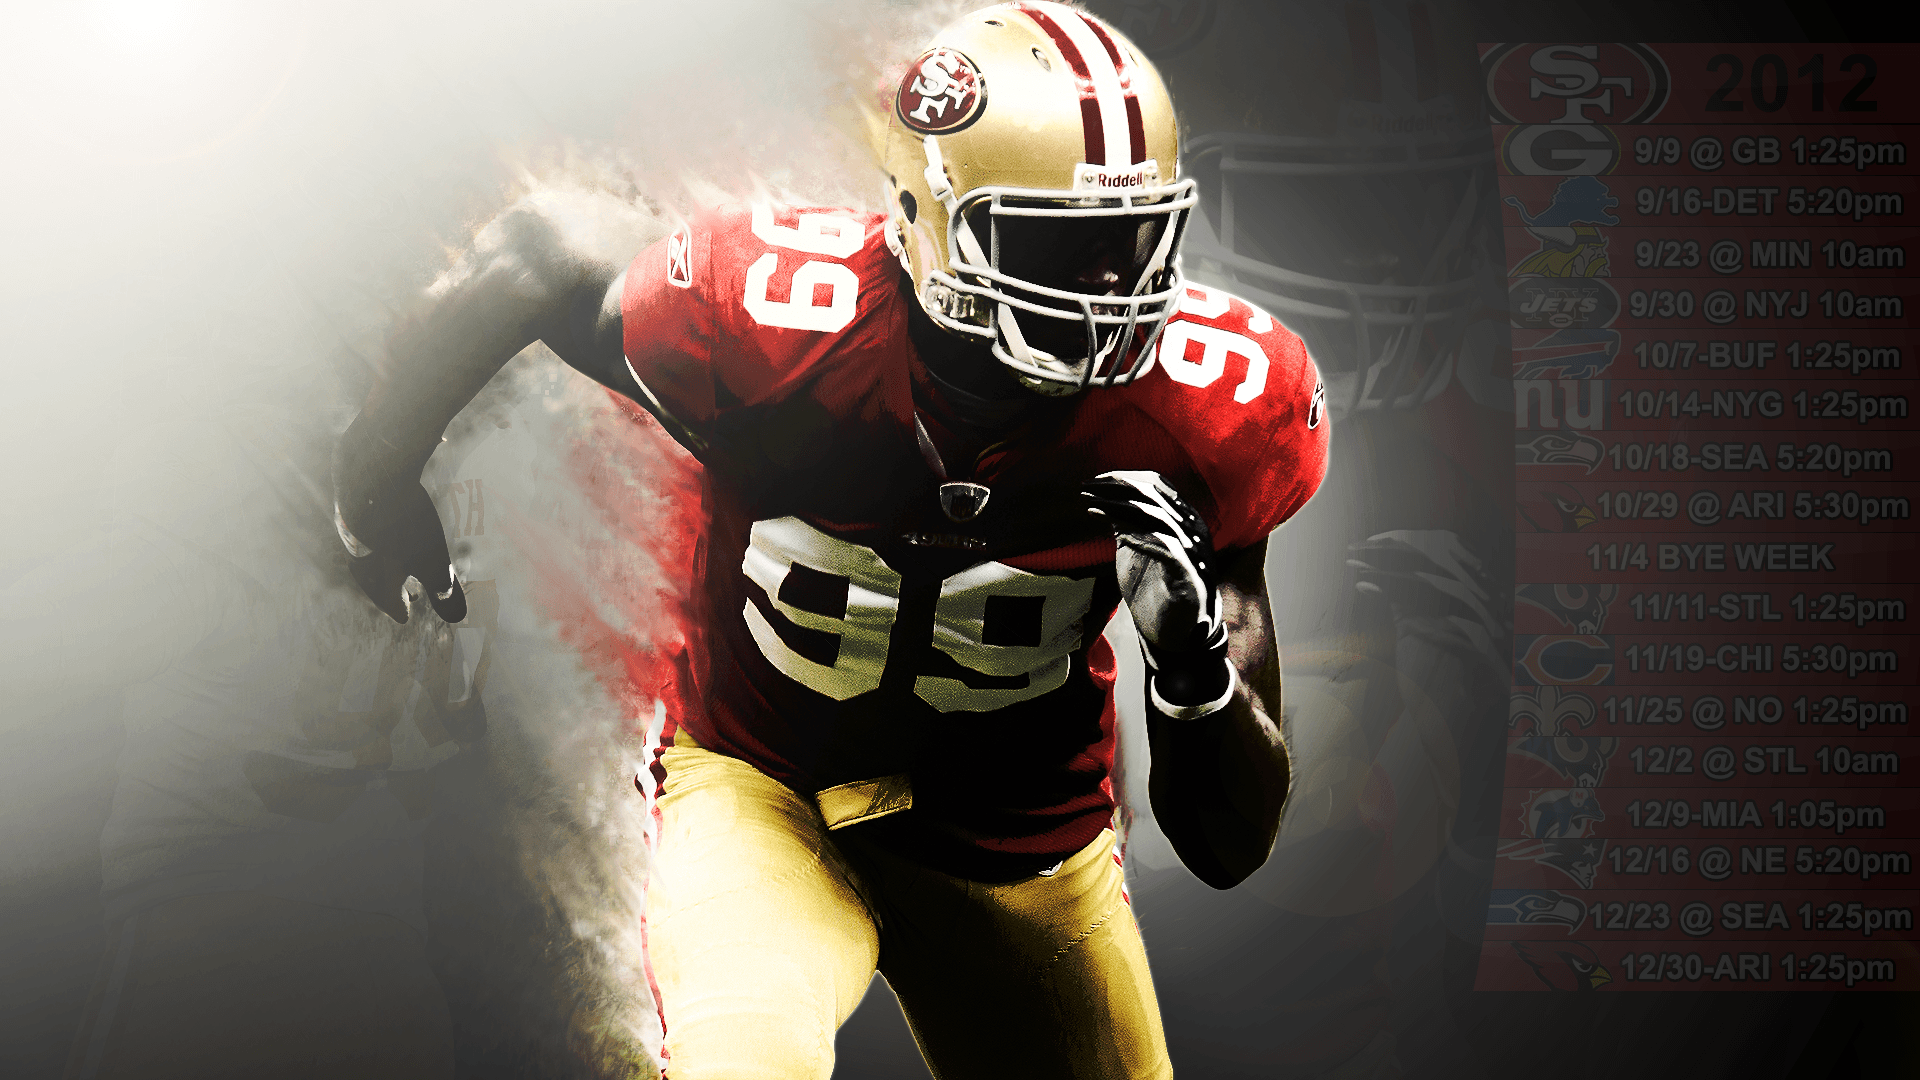 HD San Francisco 49ers Wallpapers - Page 3 of 3 - wallpaper.wiki